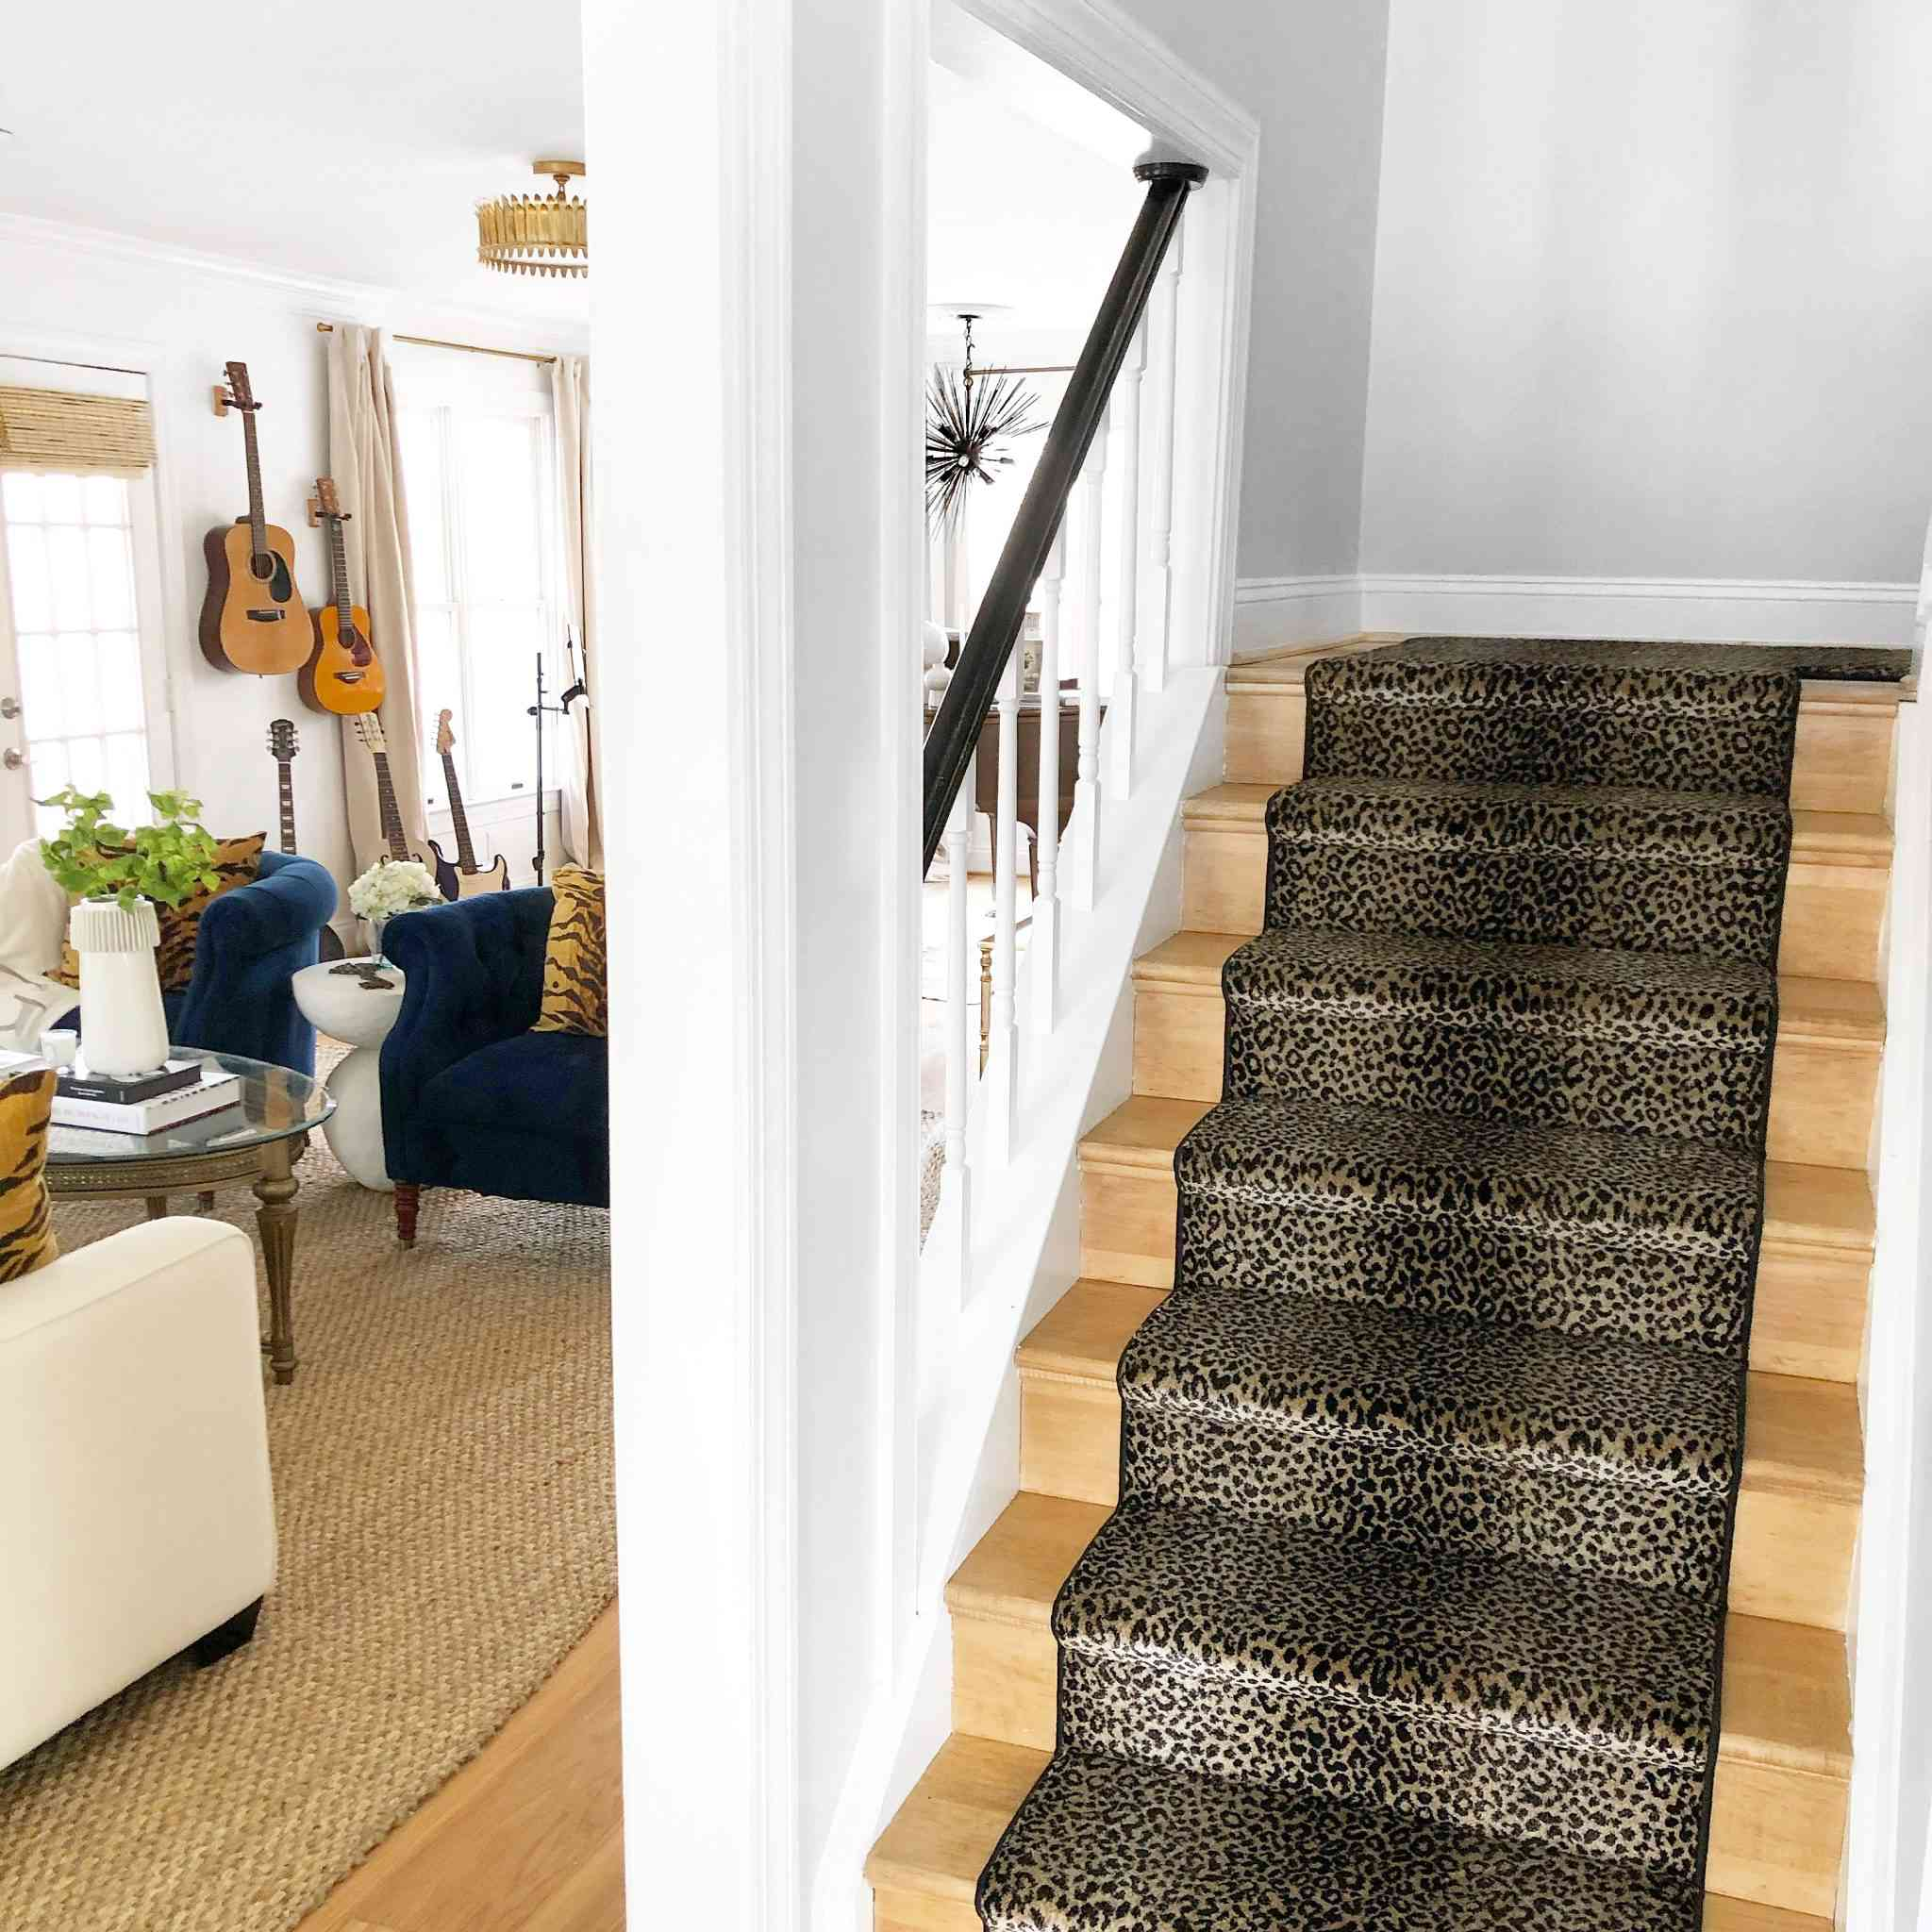 Small staircase with leopard print runner.